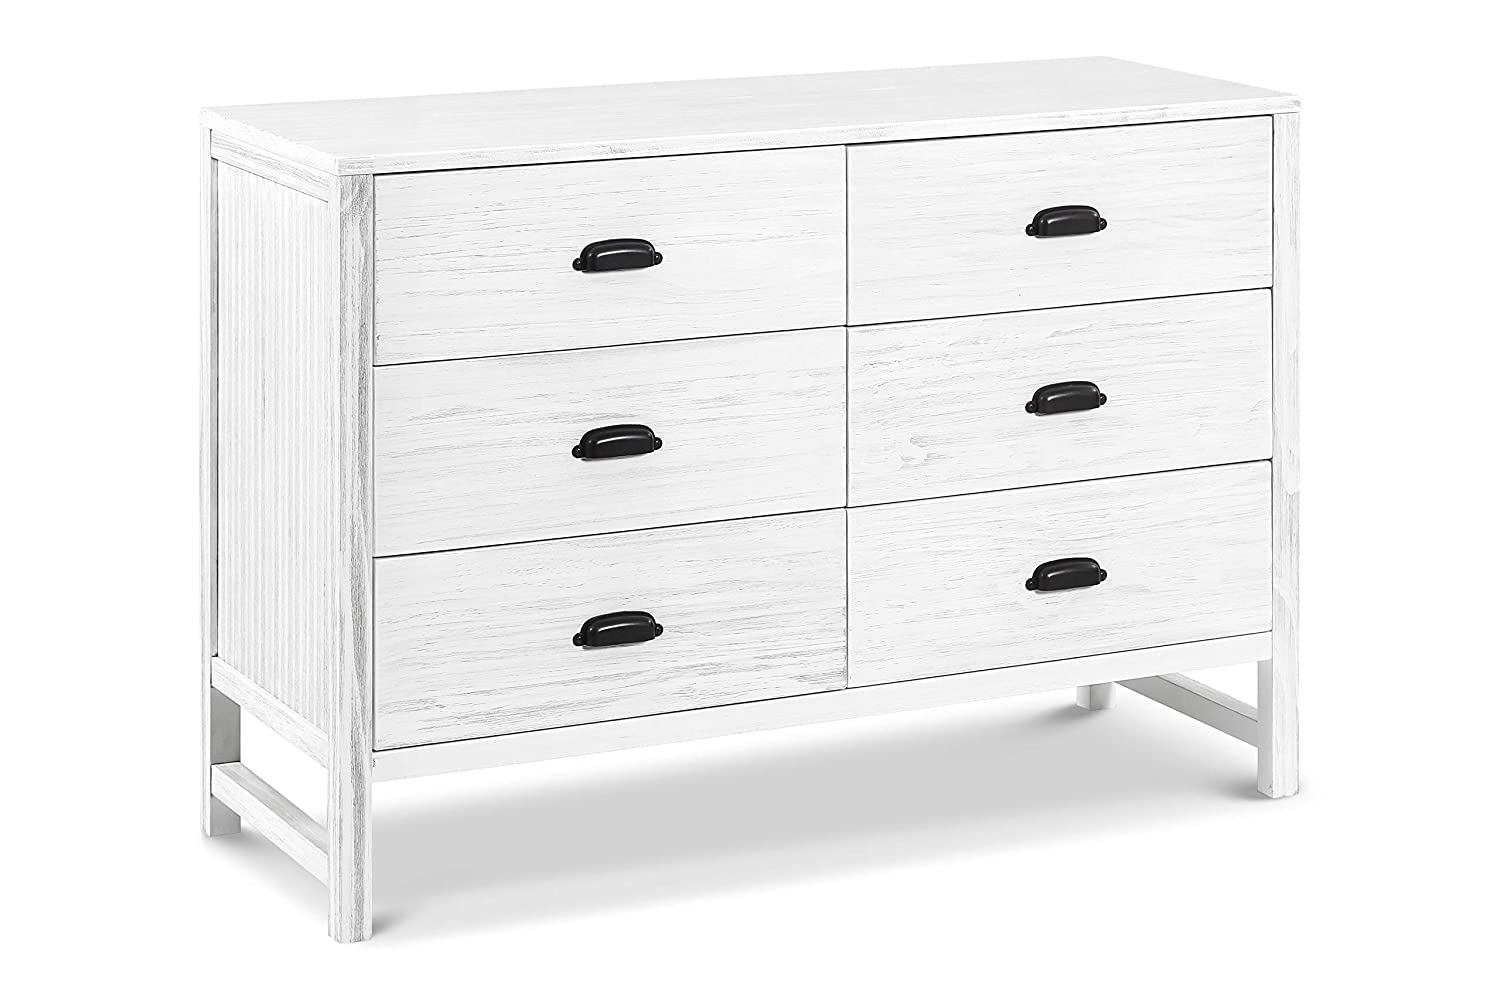 DaVinci Fairway 6-Drawer Double Dresser, Rustic Grey DaVinci - DROPSHIP M13516UG